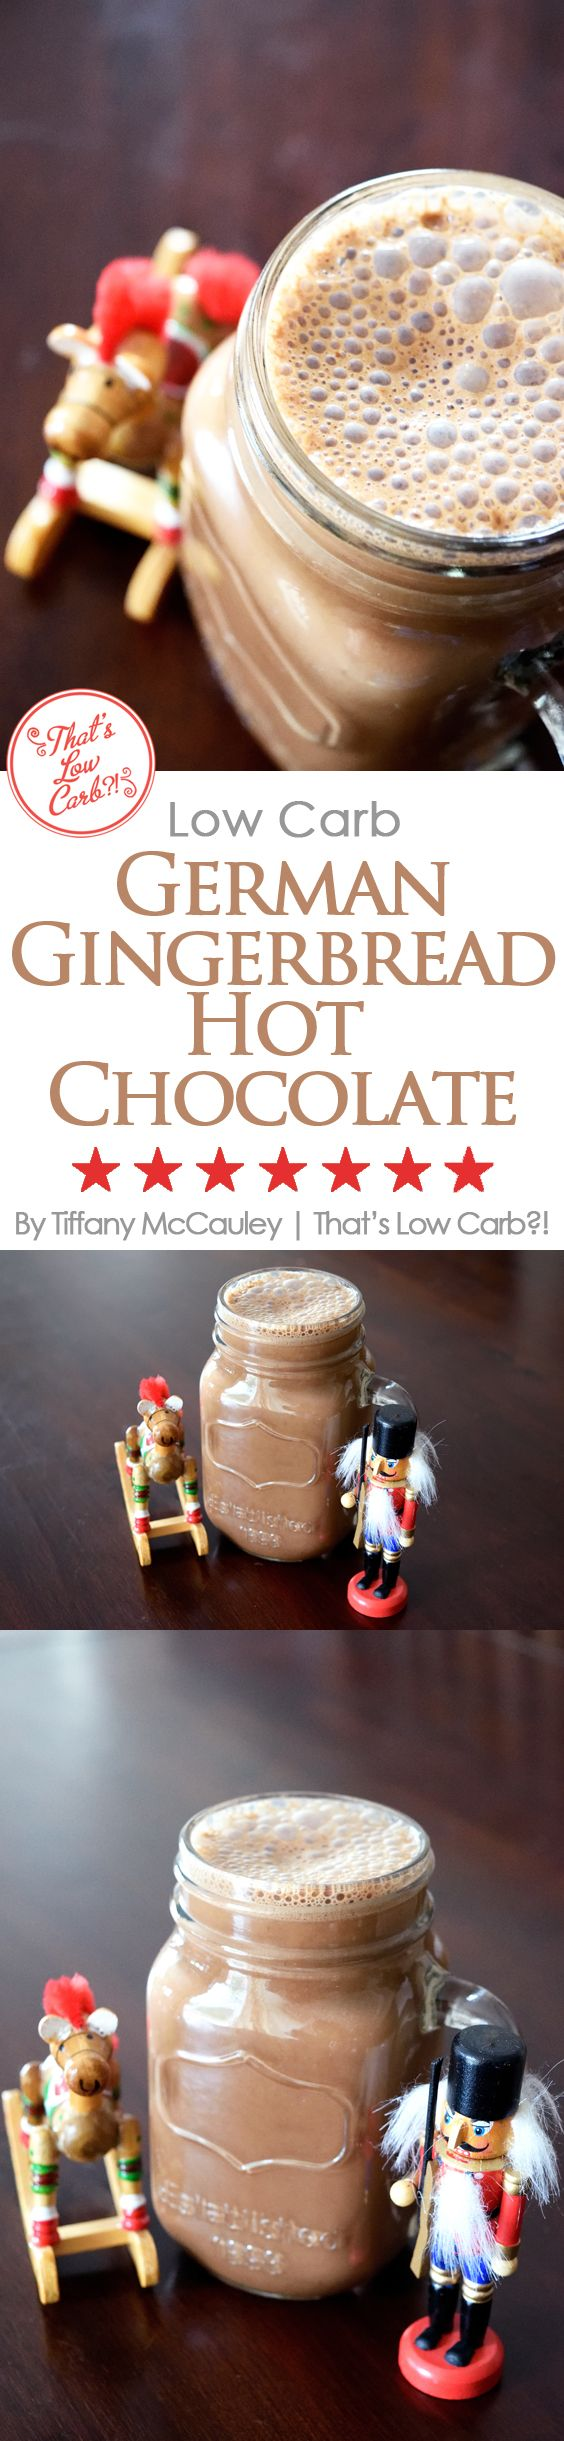 Low Carb Recipes | Low Carb Hot Chocolate Recipe | German Gingerbread Hot Chocolate